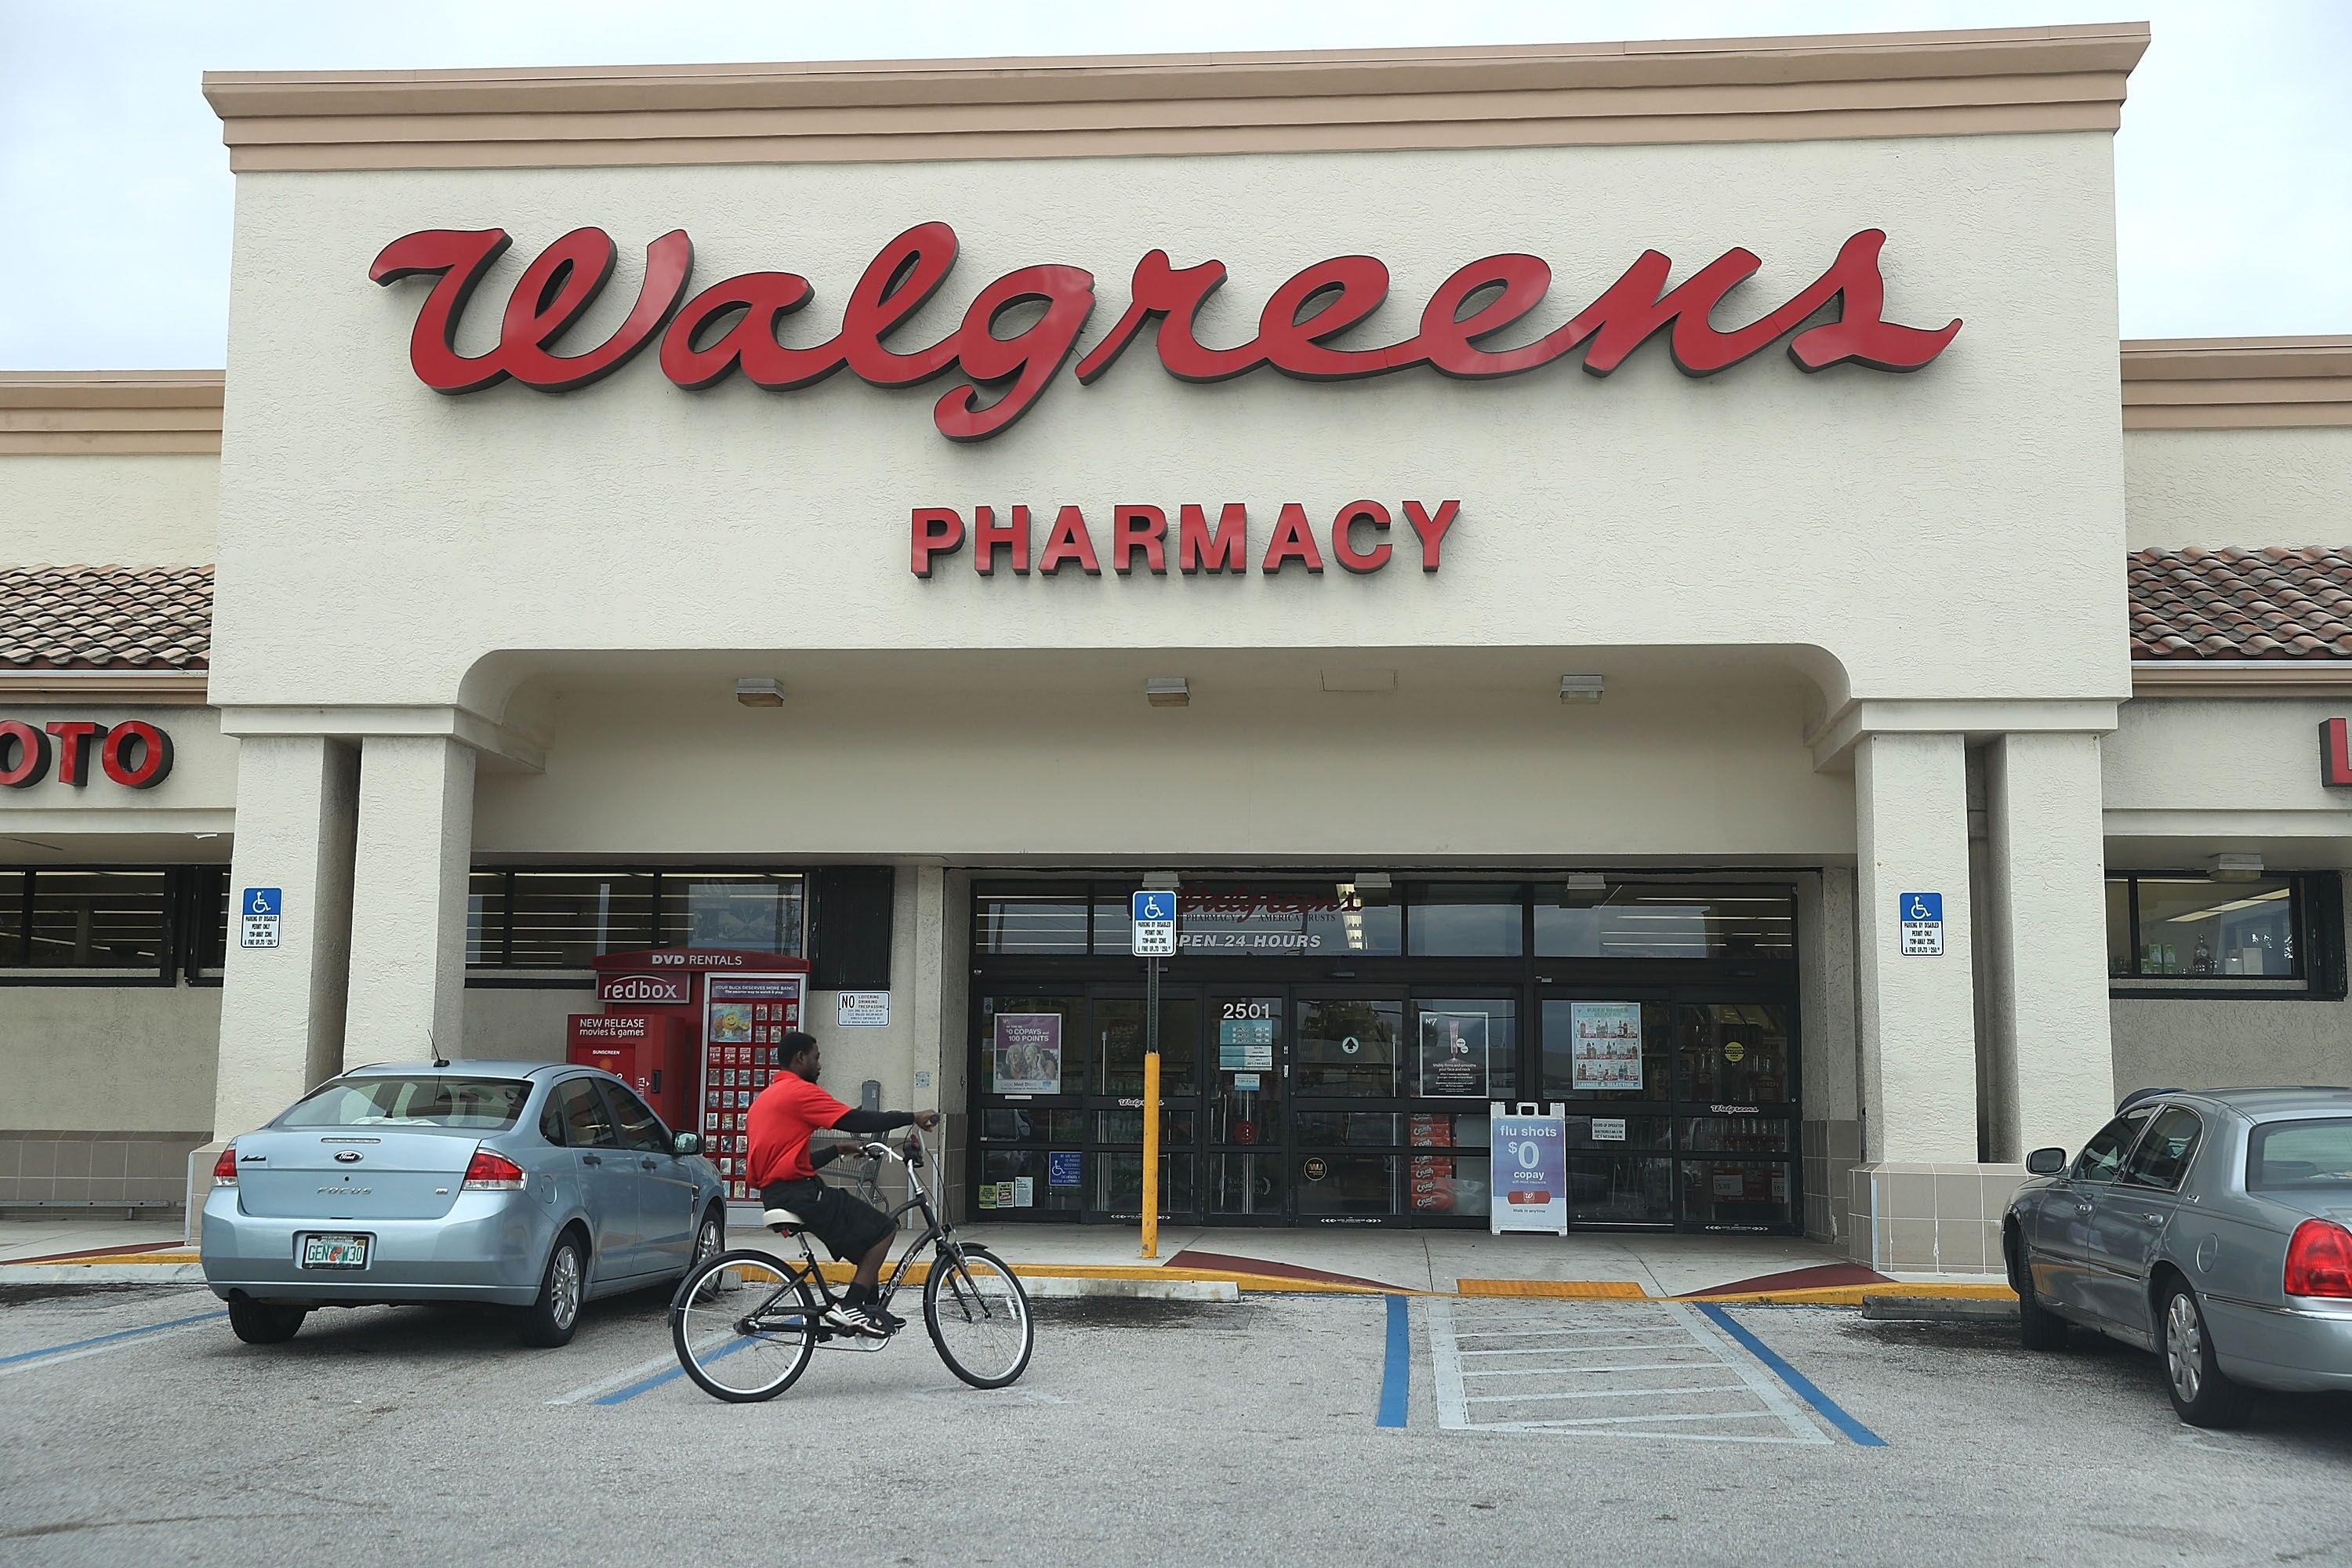 Dec 05,  · Walgreens Coupons & Free Shipping Codes. Even better, if there are any issues with your order you can return it to a local Walgreens store for a full refund. With ordering made so simple, all you need to worry about is finding the best coupon for your specific order.